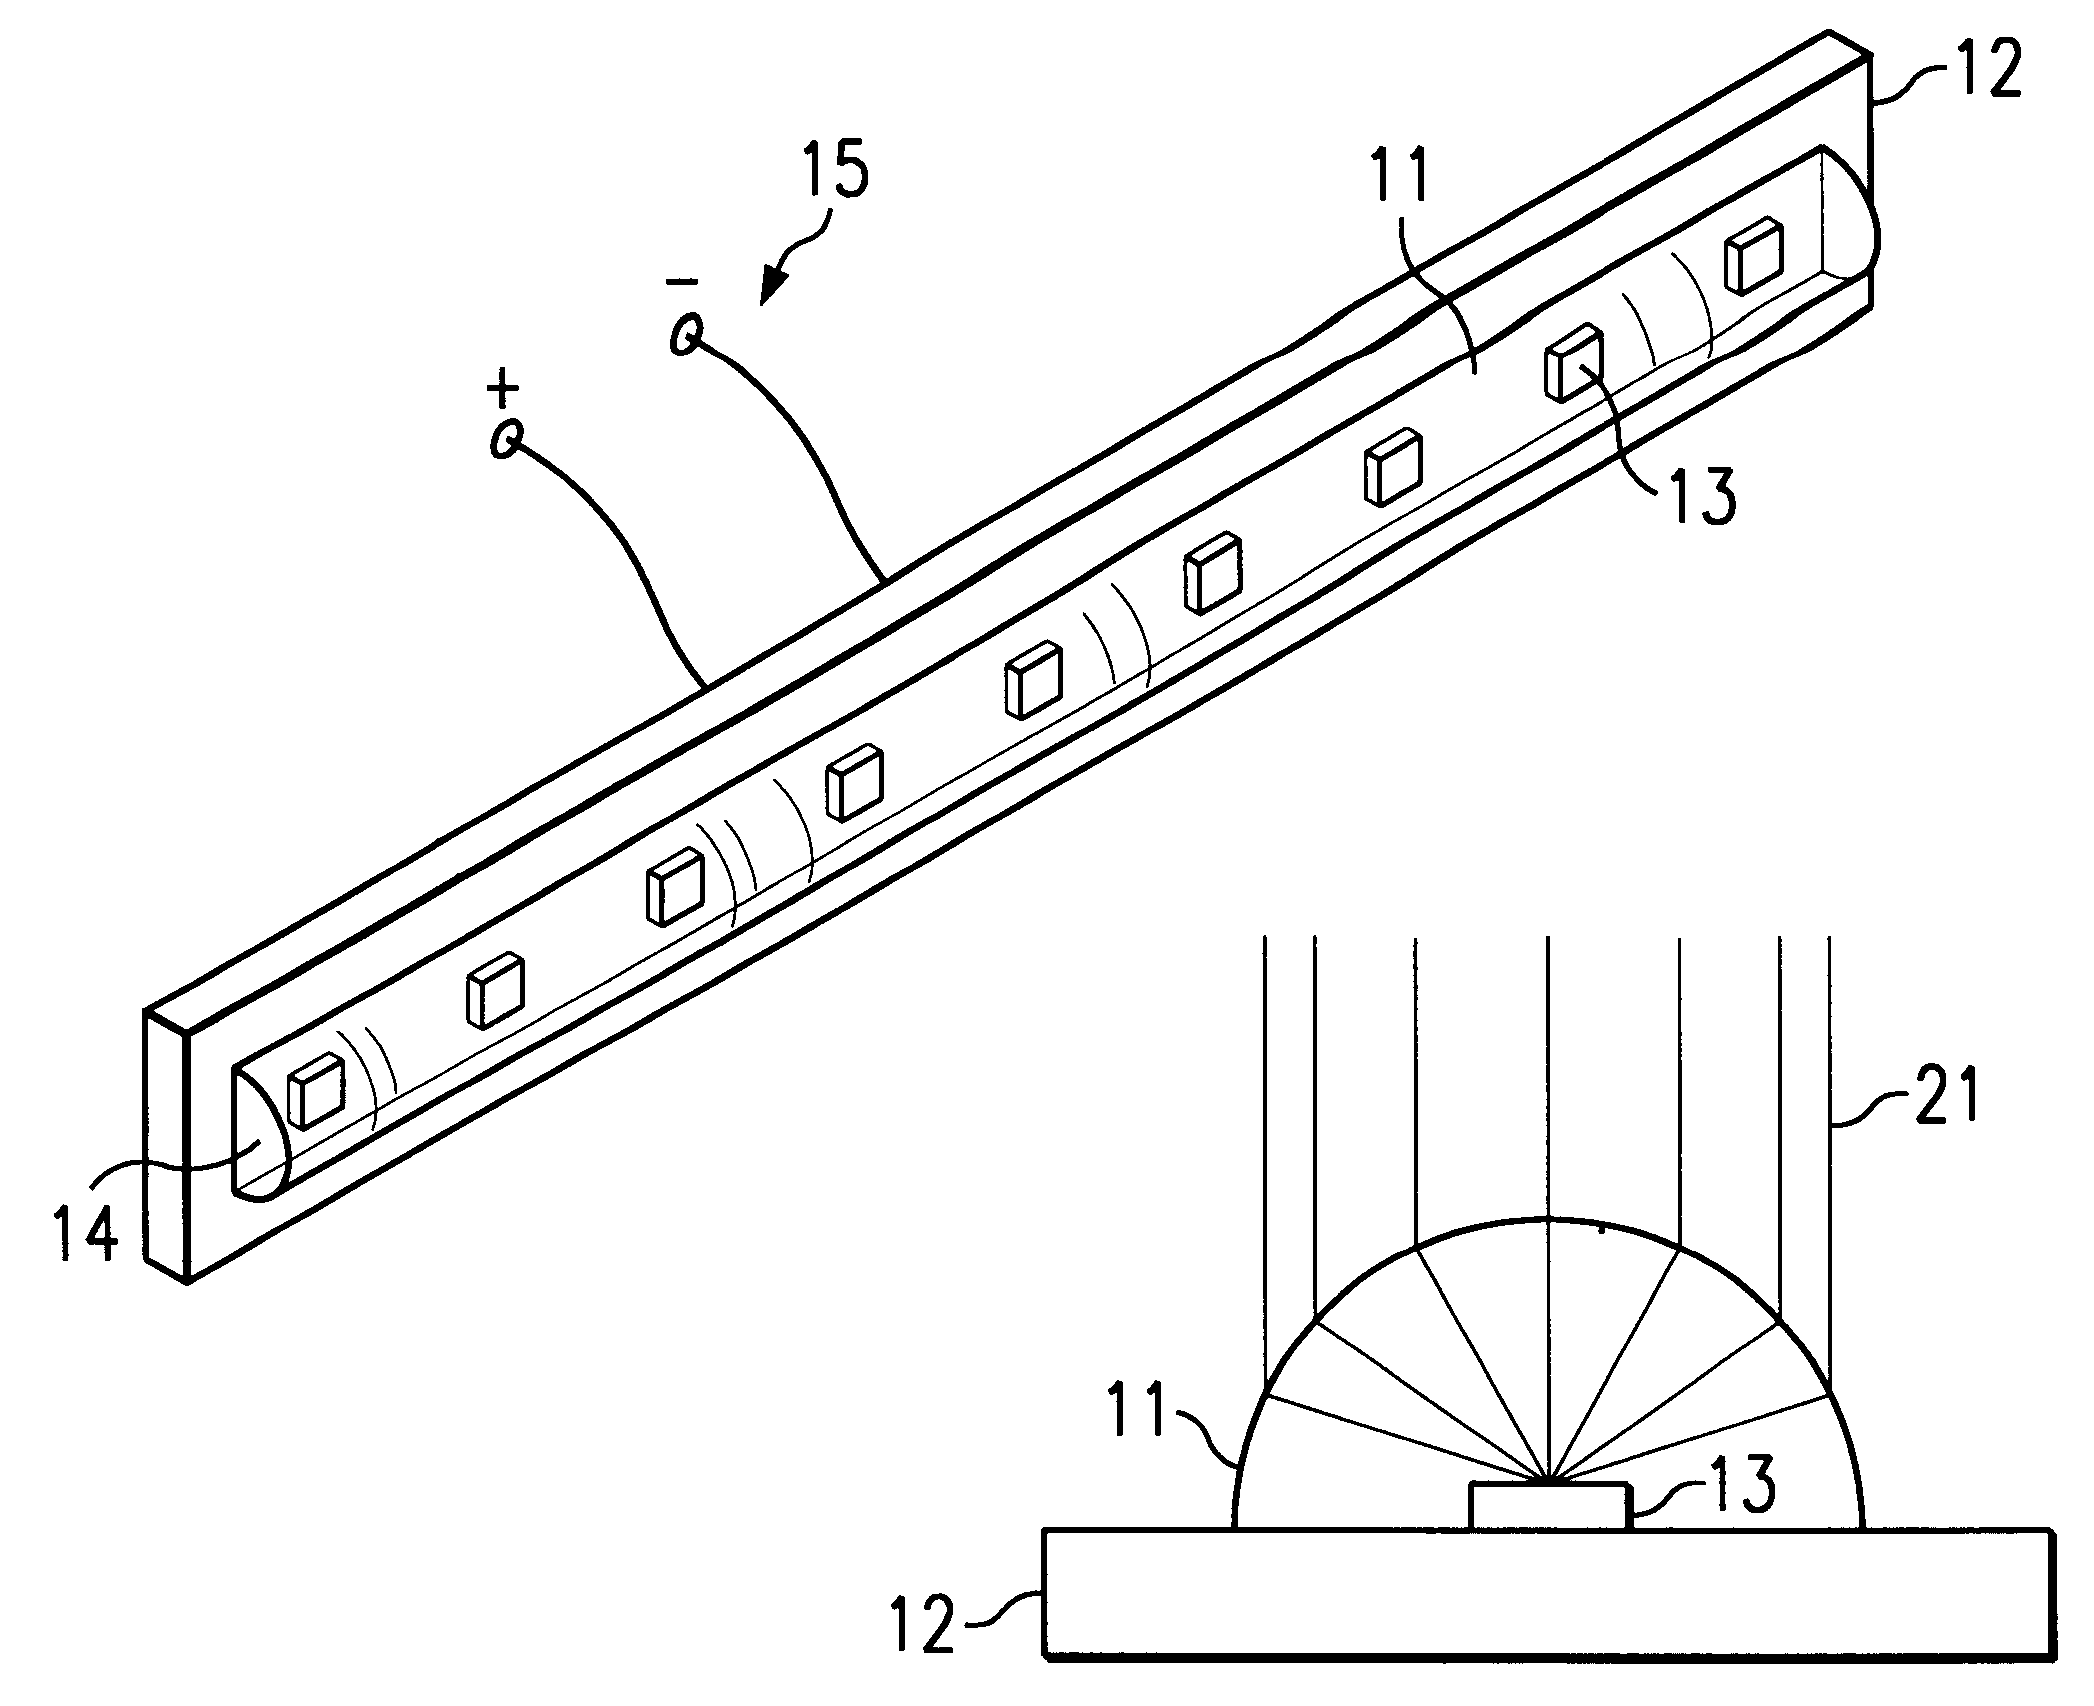 patent us6188527 - led array pcb with adhesive rod lens